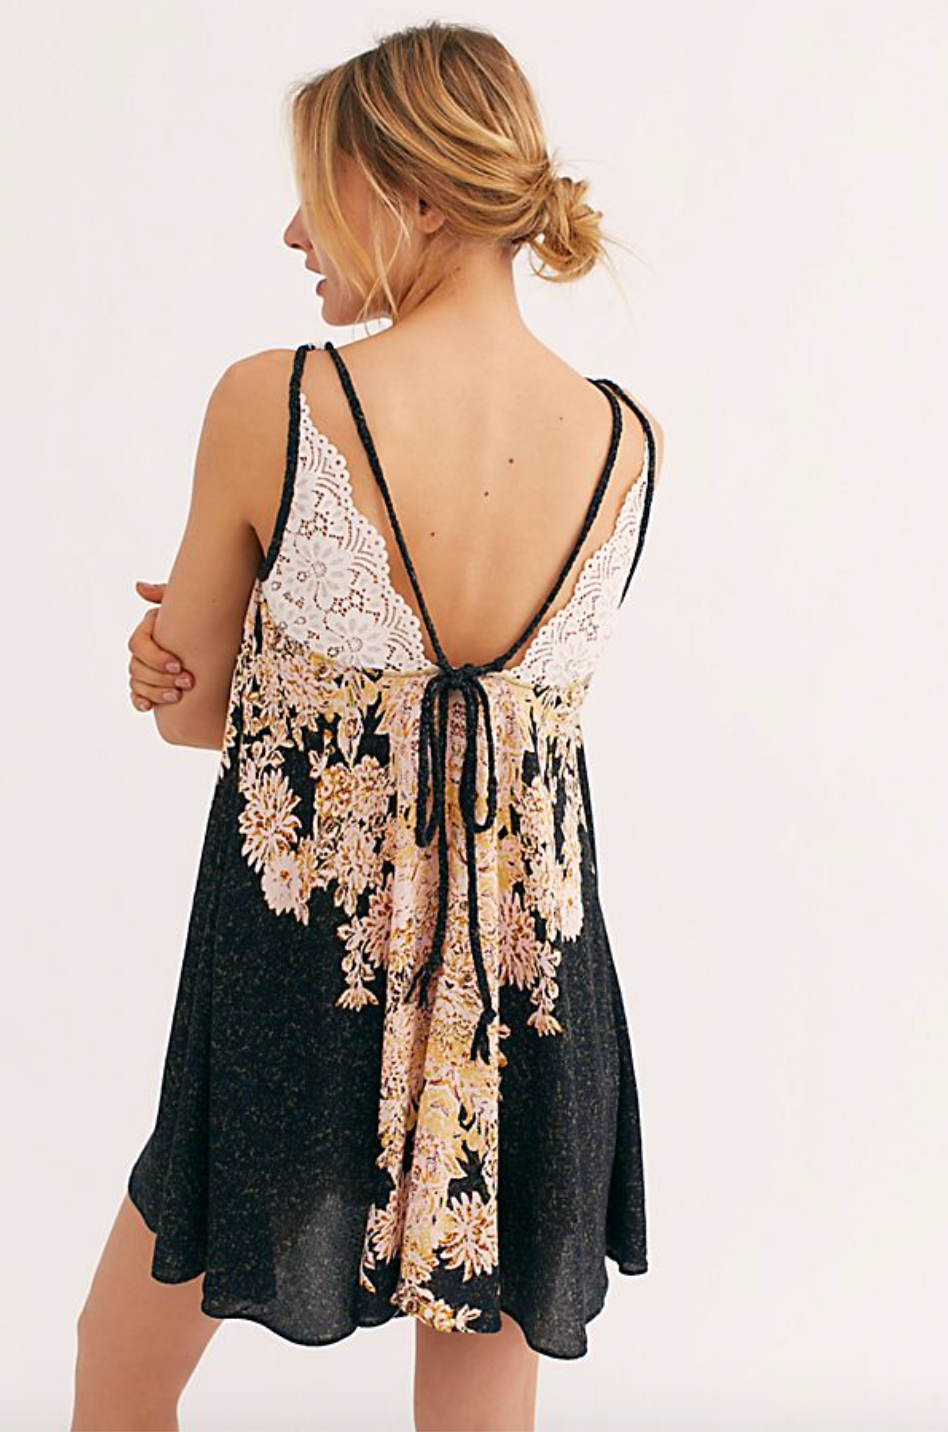 Spring dresses, including this Free People Morning Sun Slip | glitterinc.com | @glitterinc